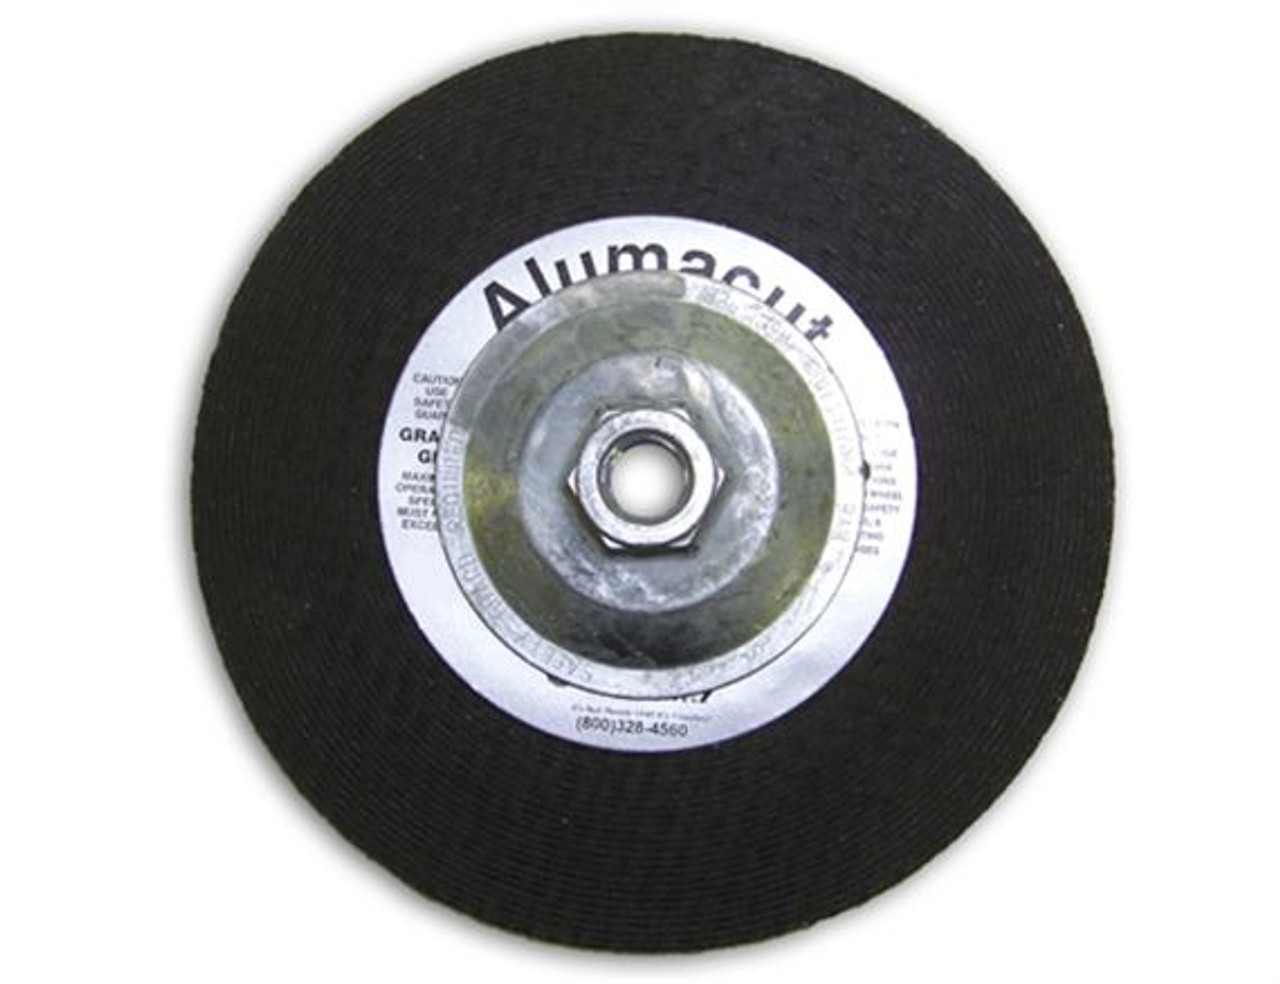 Sparky Alumacut T27 Grinding Wheel (with Hub) - Best for Aluminum Grinding!